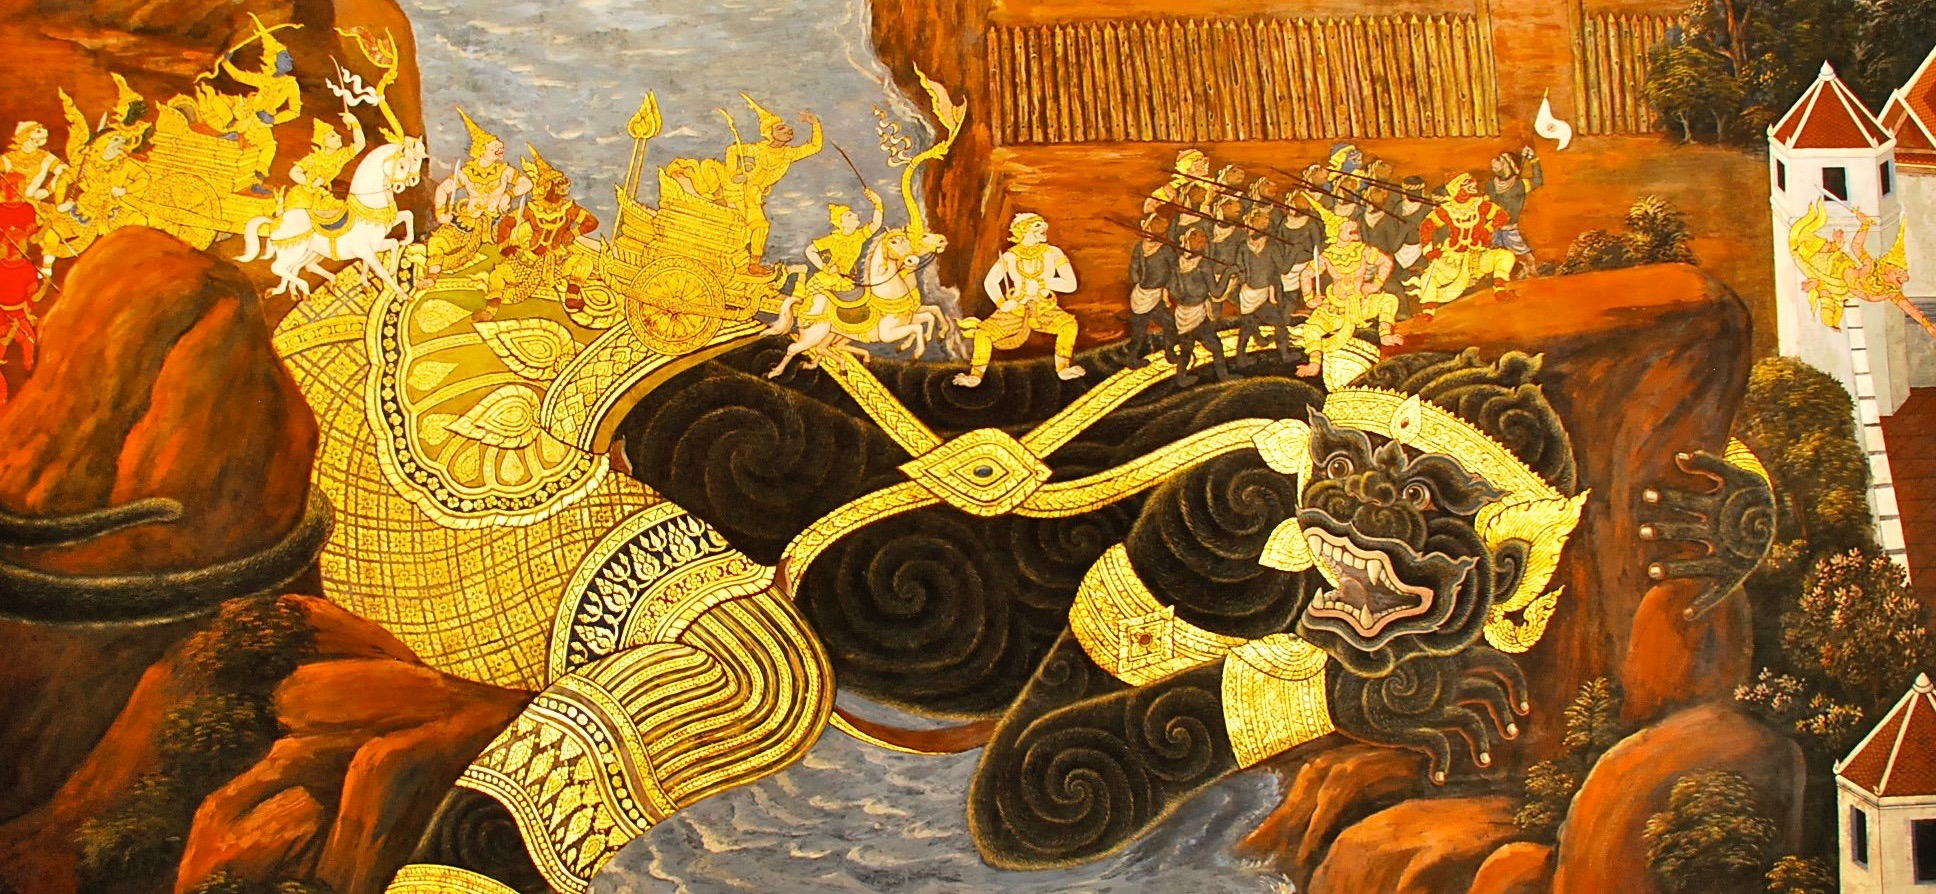 Thai Temple Mural, Grand Palace, photograph by author